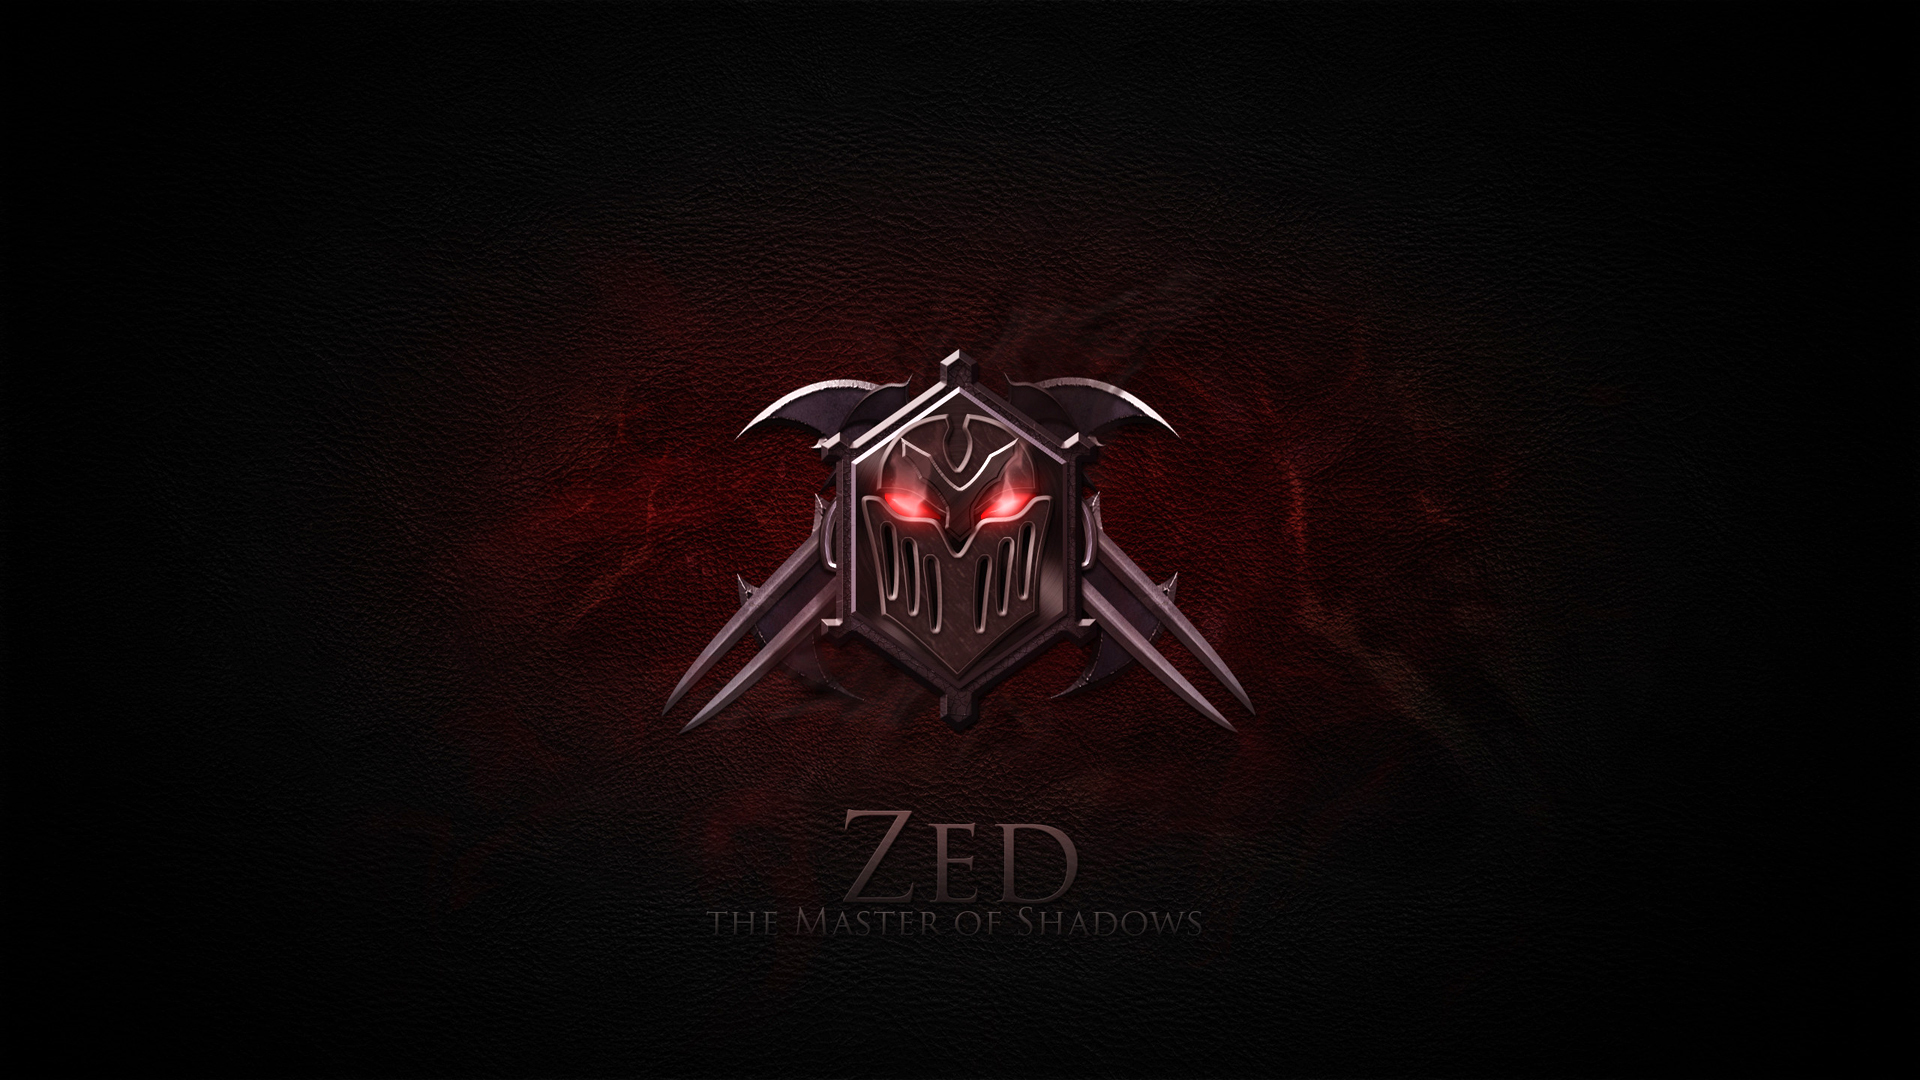 Zed logo icon League of Legends game LoL champion. HD 1920x1080 1080p ...